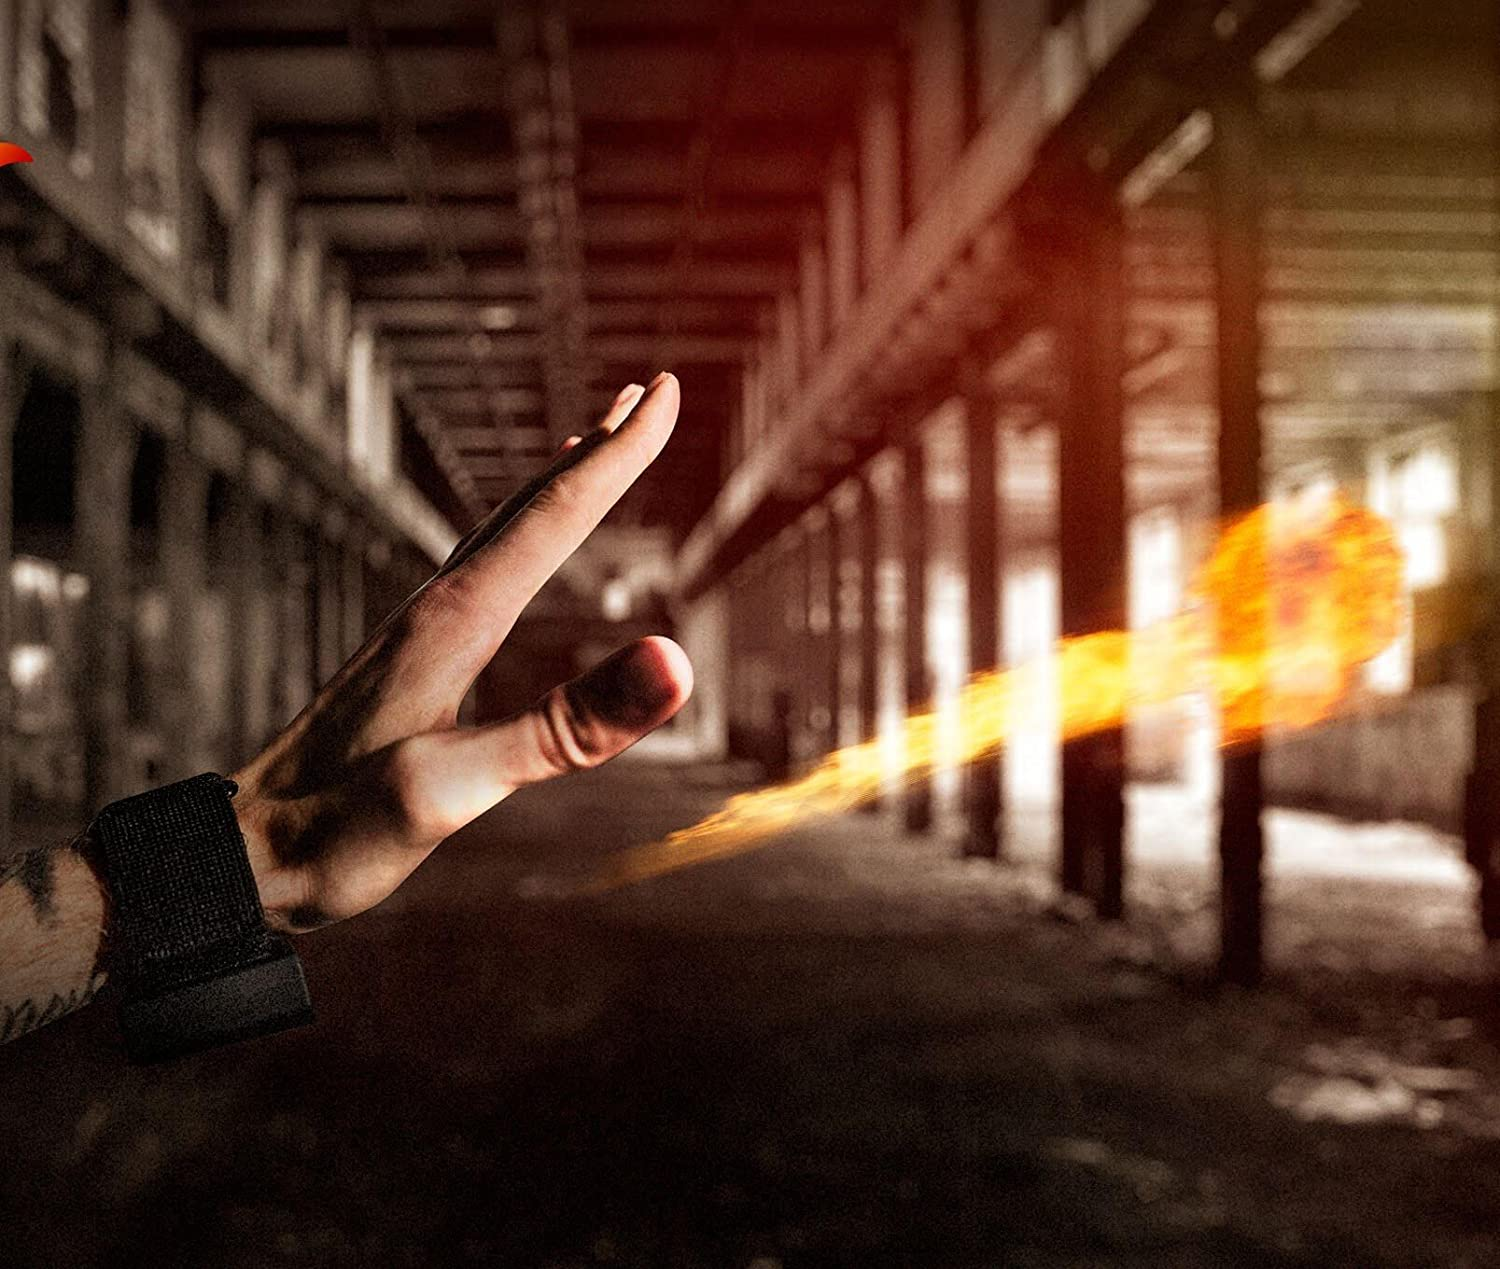 More Fire. Less Bulk Ellusionist Pyro Mini Fireshooter Magic Wrist Device Shoots Fireballs from Your Empty Hands